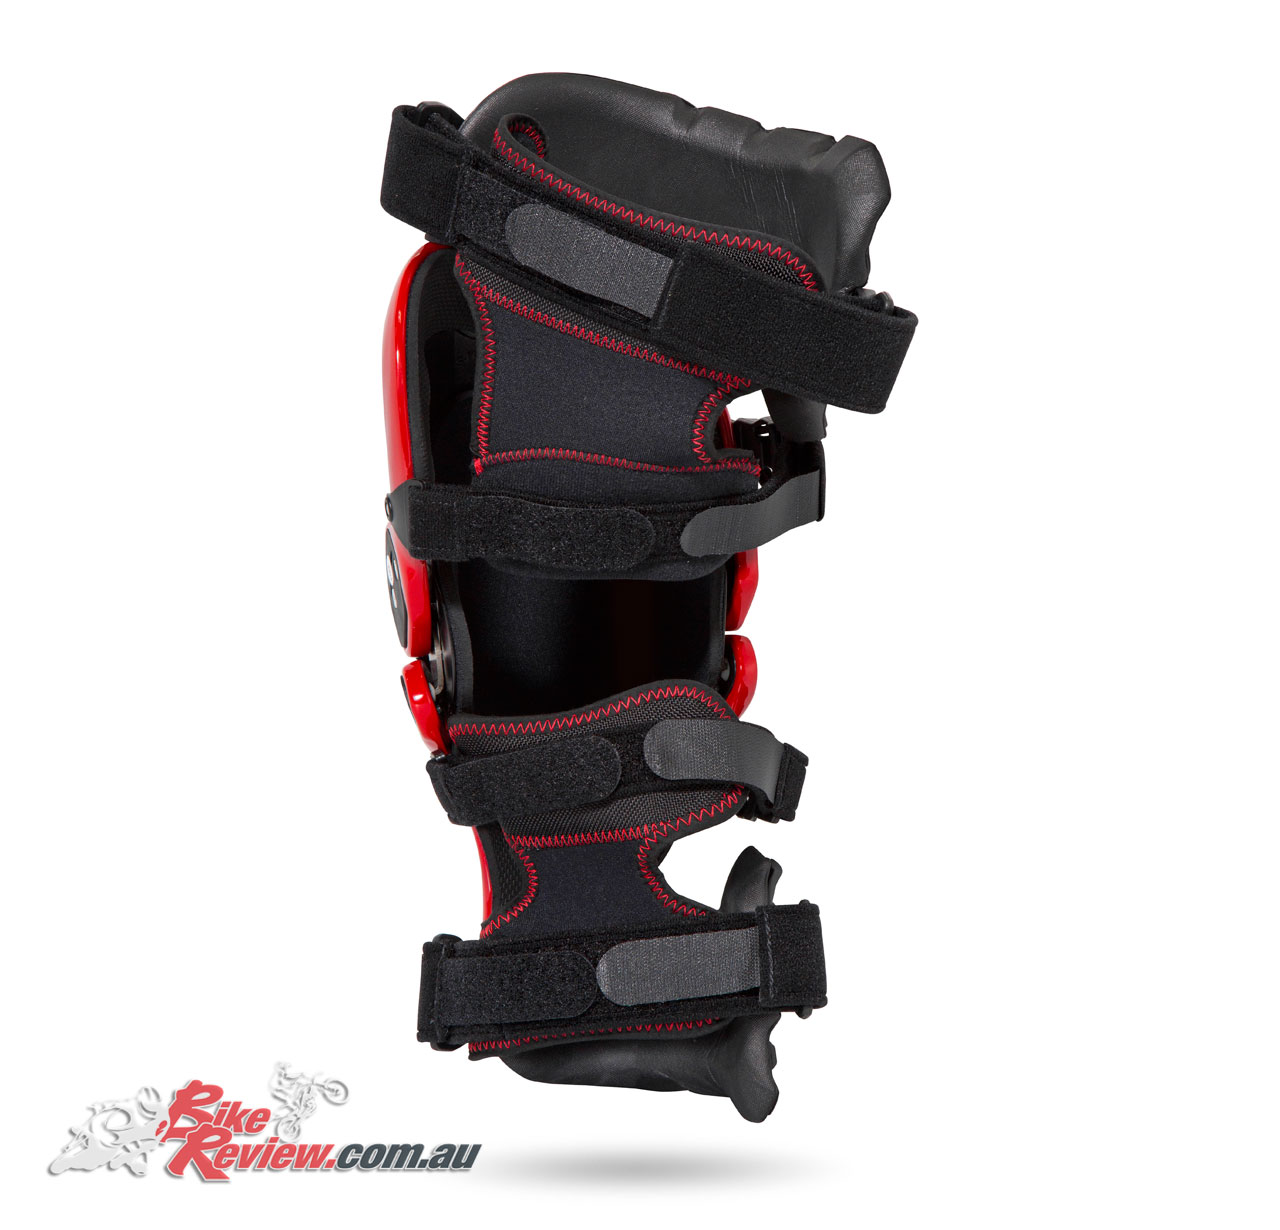 New Product Asterisk Ultra Cell 20 Knee Brace - Bike Review-7557